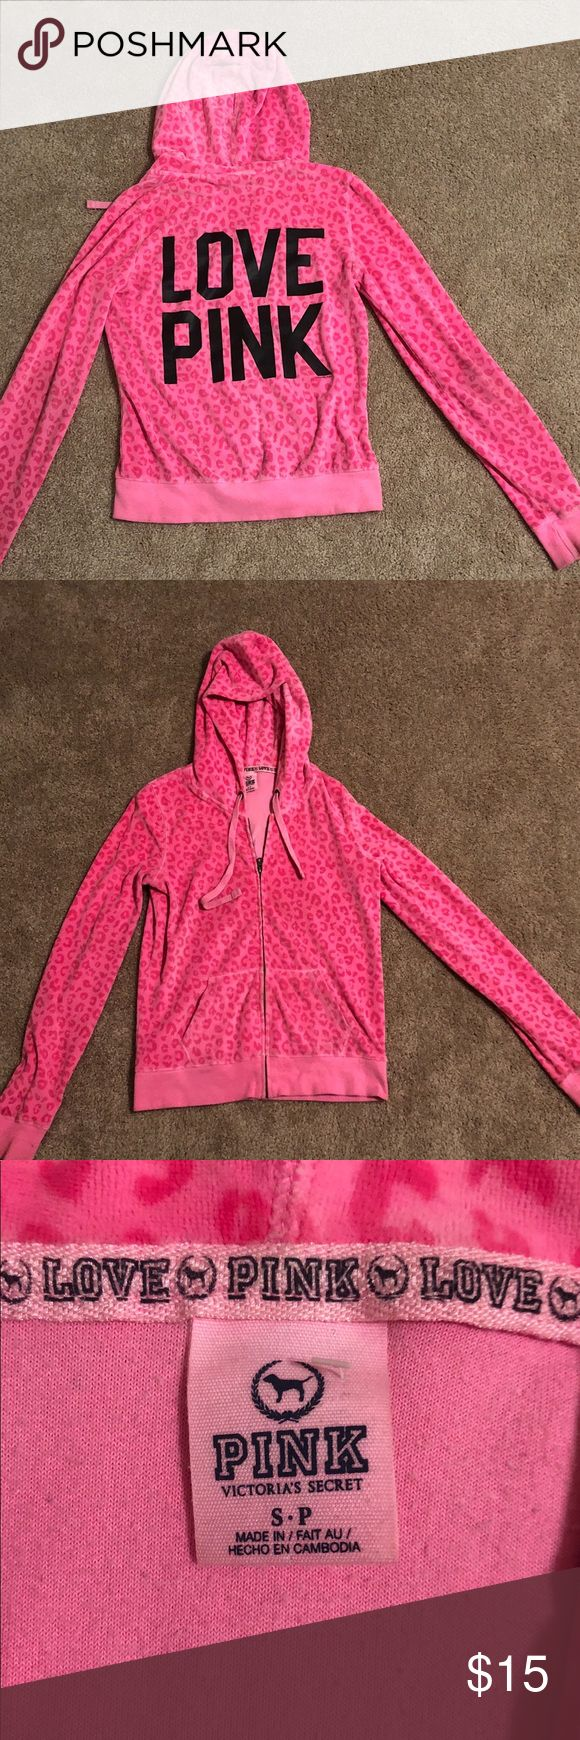 Victoria's secret pink zip up jacket Victoria's Secret pink zip up jacket that is hot pink with cheetah print detailing all over.The jacket is Size small very soft material with an adjustable hoodie. PINK Victoria's Secret Tops Sweatshirts & Hoodies